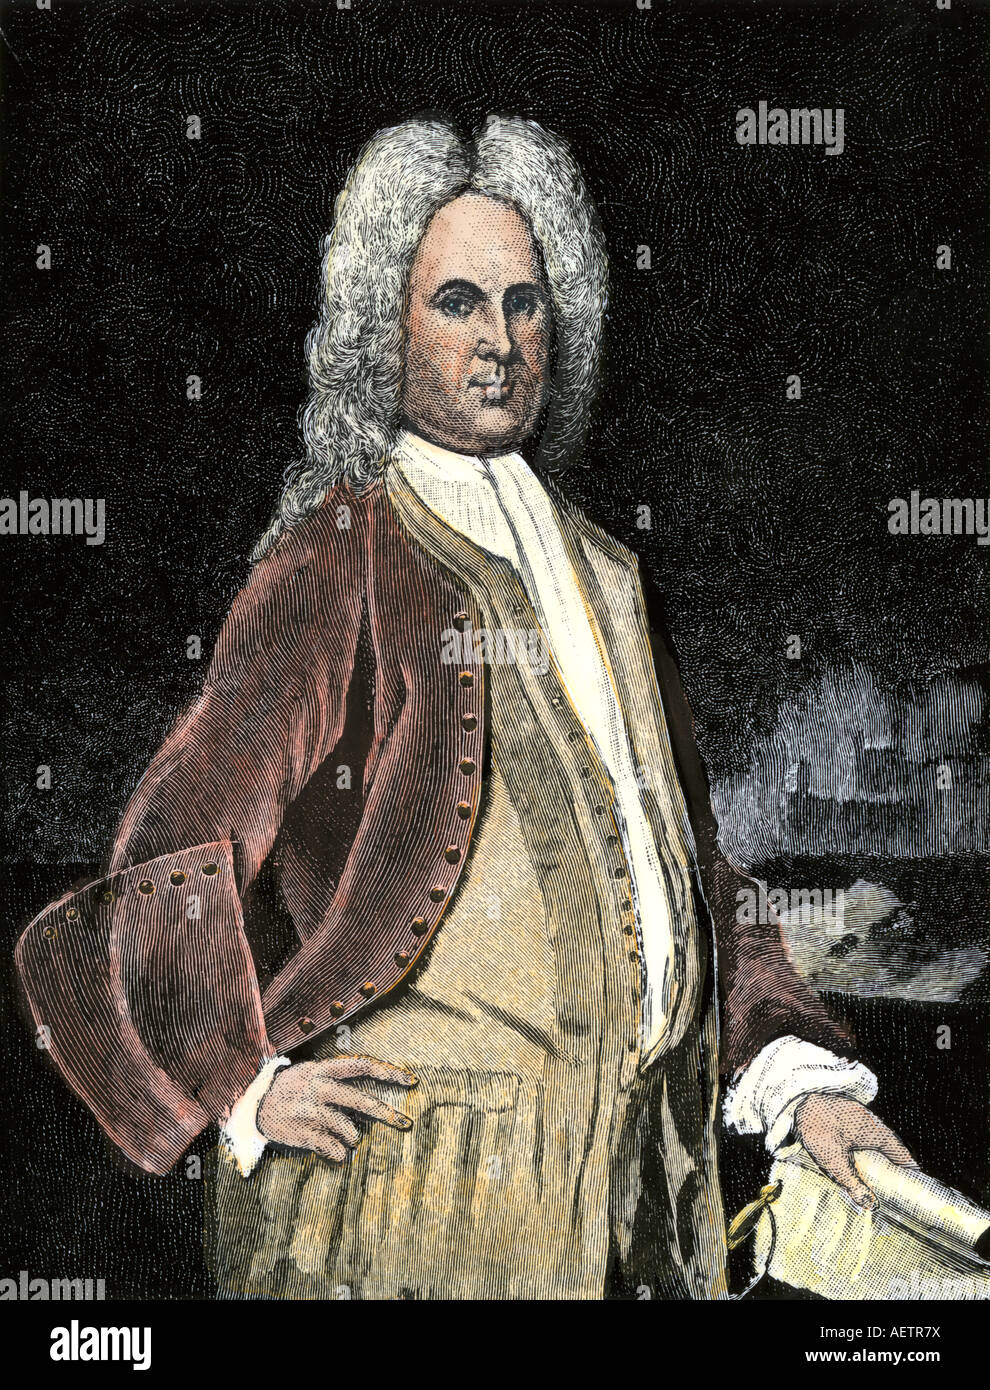 Alexander Spotswood, Lieutenant Governor of Virginia Colony. Hand-colored woodcut - Stock Image